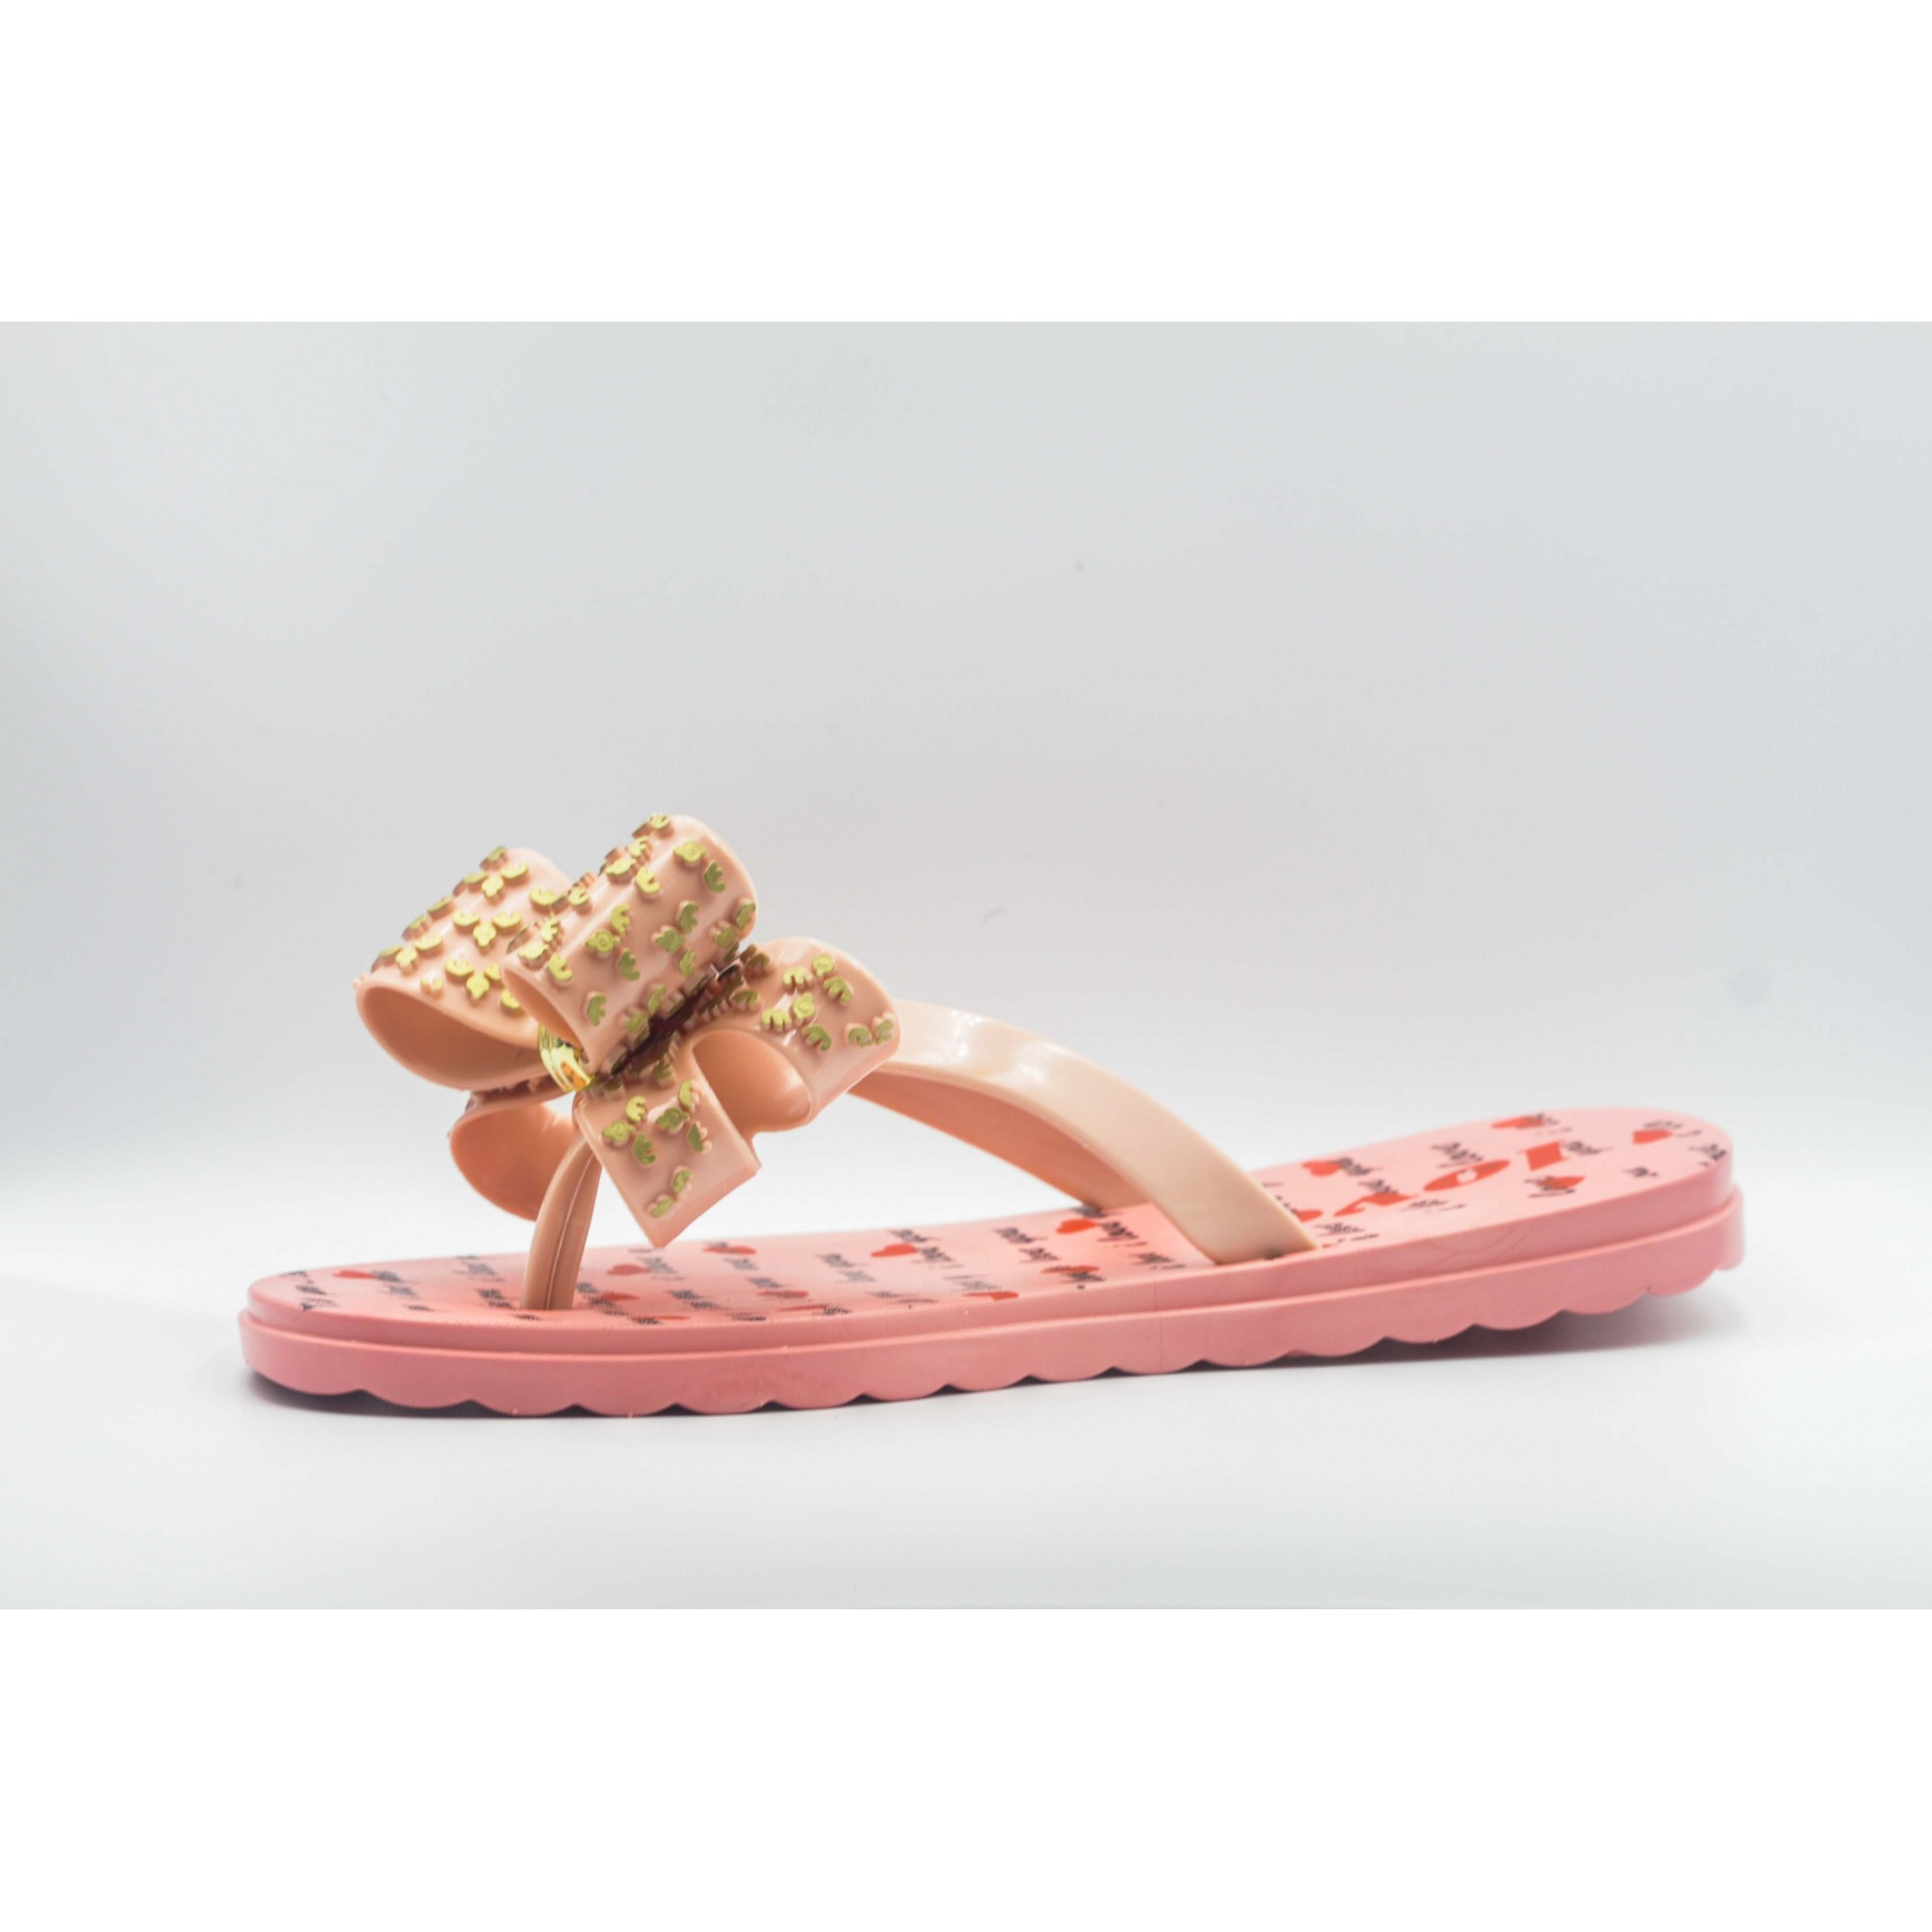 Chinelo LOVE Ref. 7000 ROSA